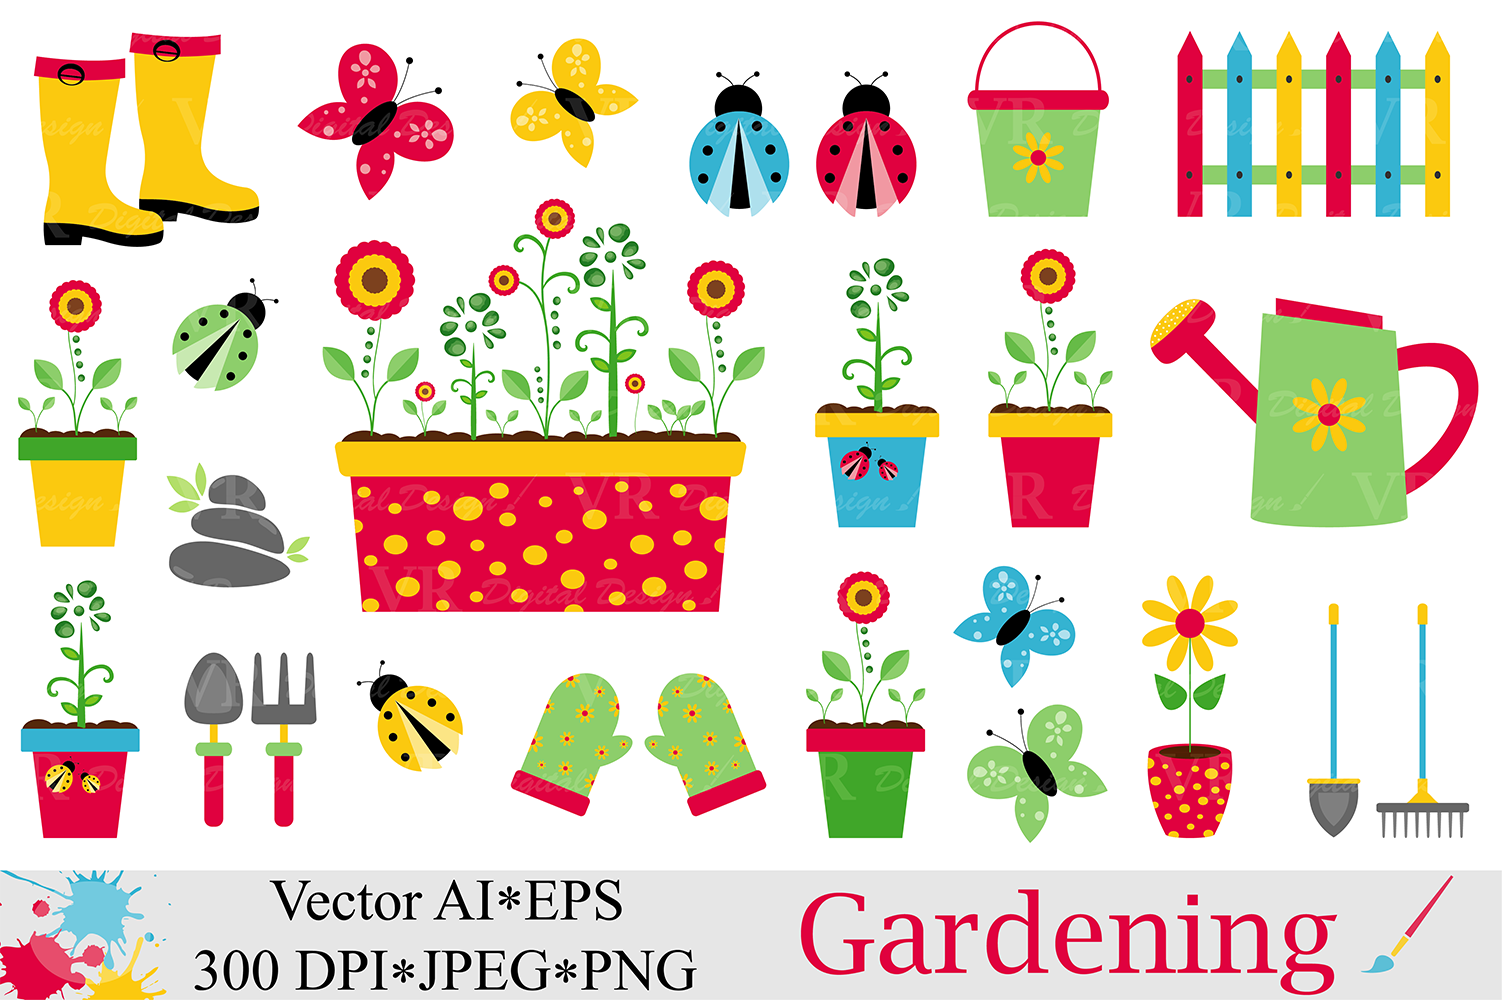 spring garden clipart gardening vector graphics ladybugs and butterflies illustartions example image 1 - Garden Clipart